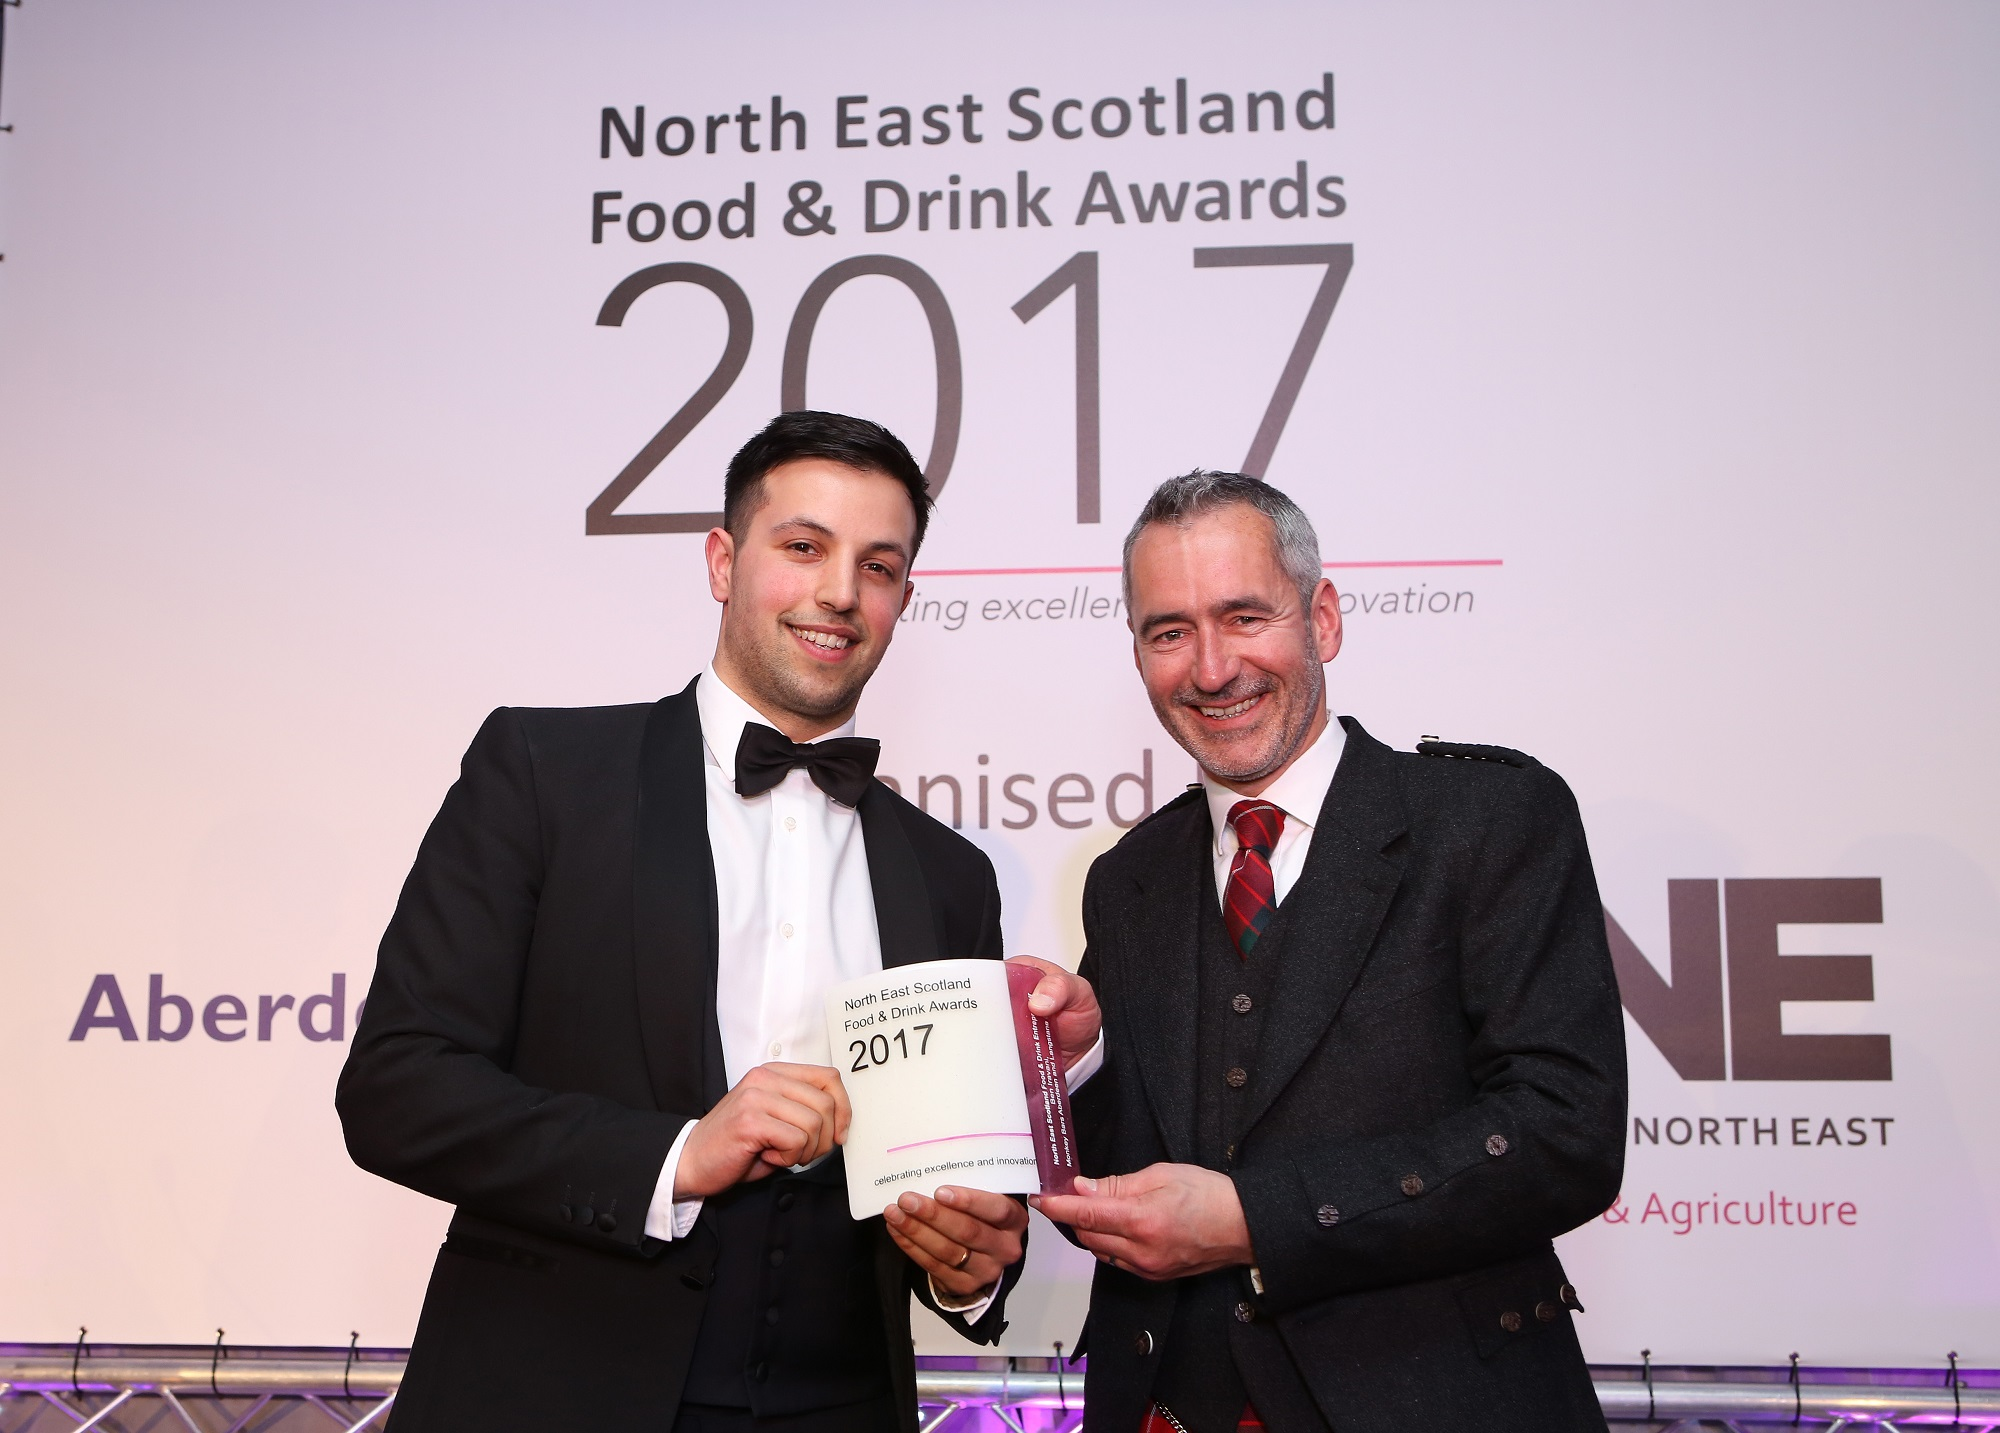 Pictured: Ben Iravani receiving the award from Graeme Fraser